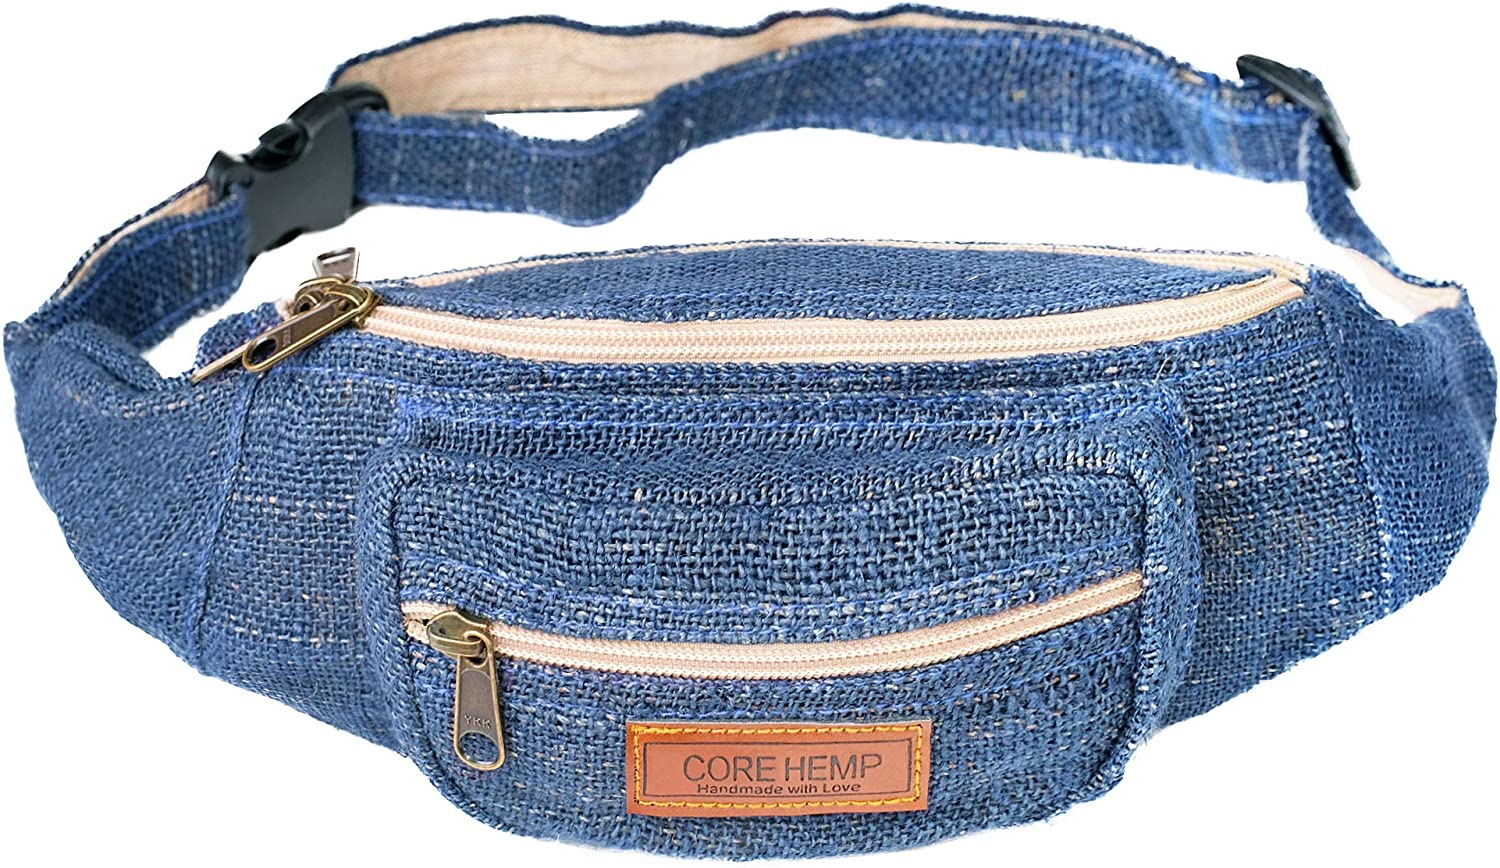 Men /& Women Hip Money Belt For Travel /& Hiking Hippy//Sling//Stylish 80s//Stripe Boho Fanny Pack Waist Bag With Adjustable Belt For Men /& Women Festival Hemp Fanny Pack